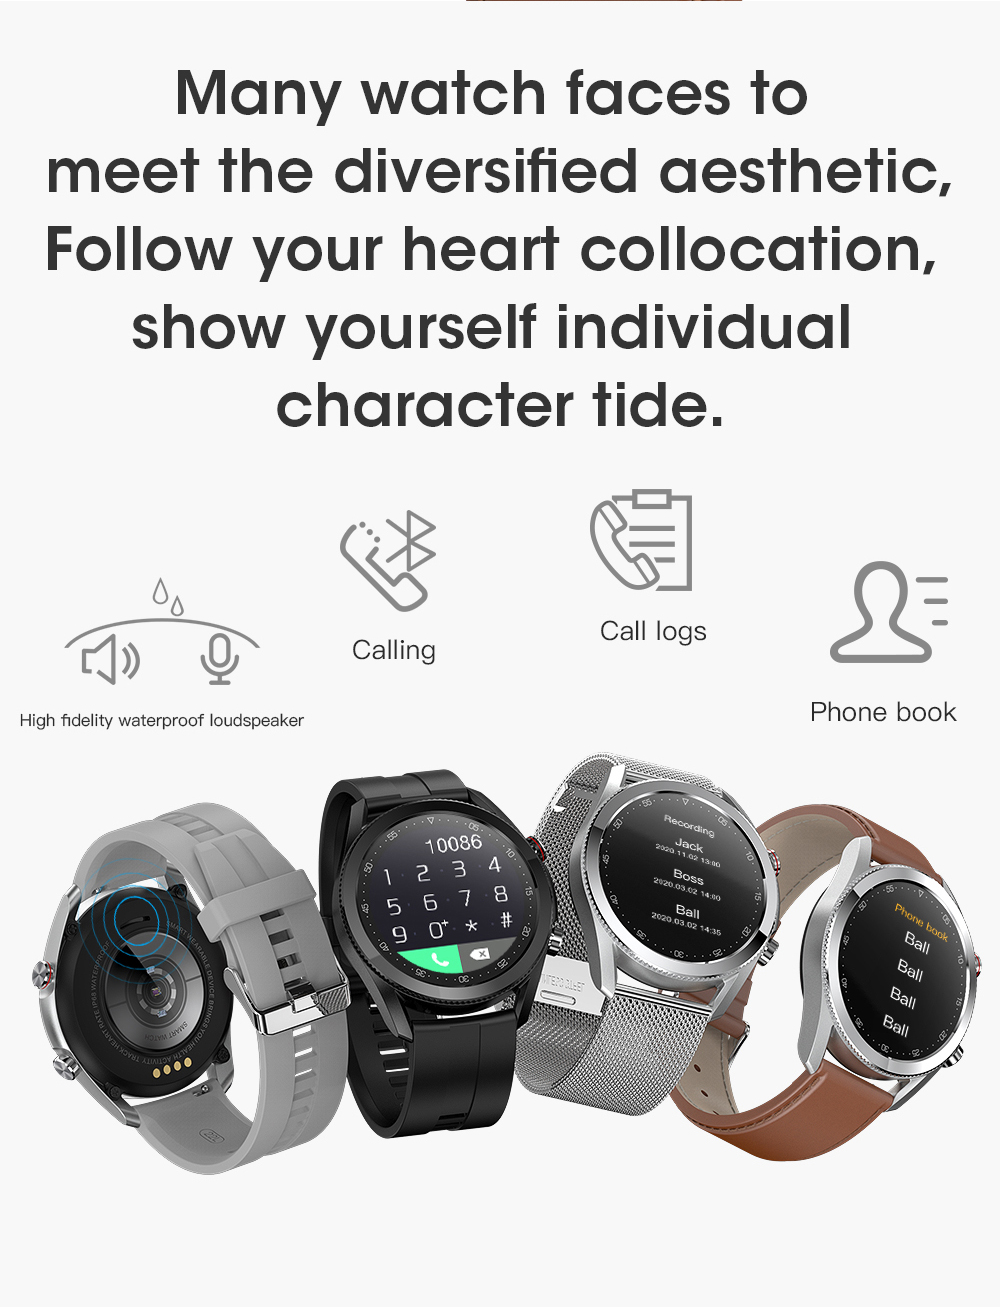 H7149e952c7b24291929c53da02391c4ce Timewolf Smart Watch Men 2021 IP68 Waterproof Android Full Touch Sports Smartwatch Bluetooth Call For Samsung Huawei Android IOS